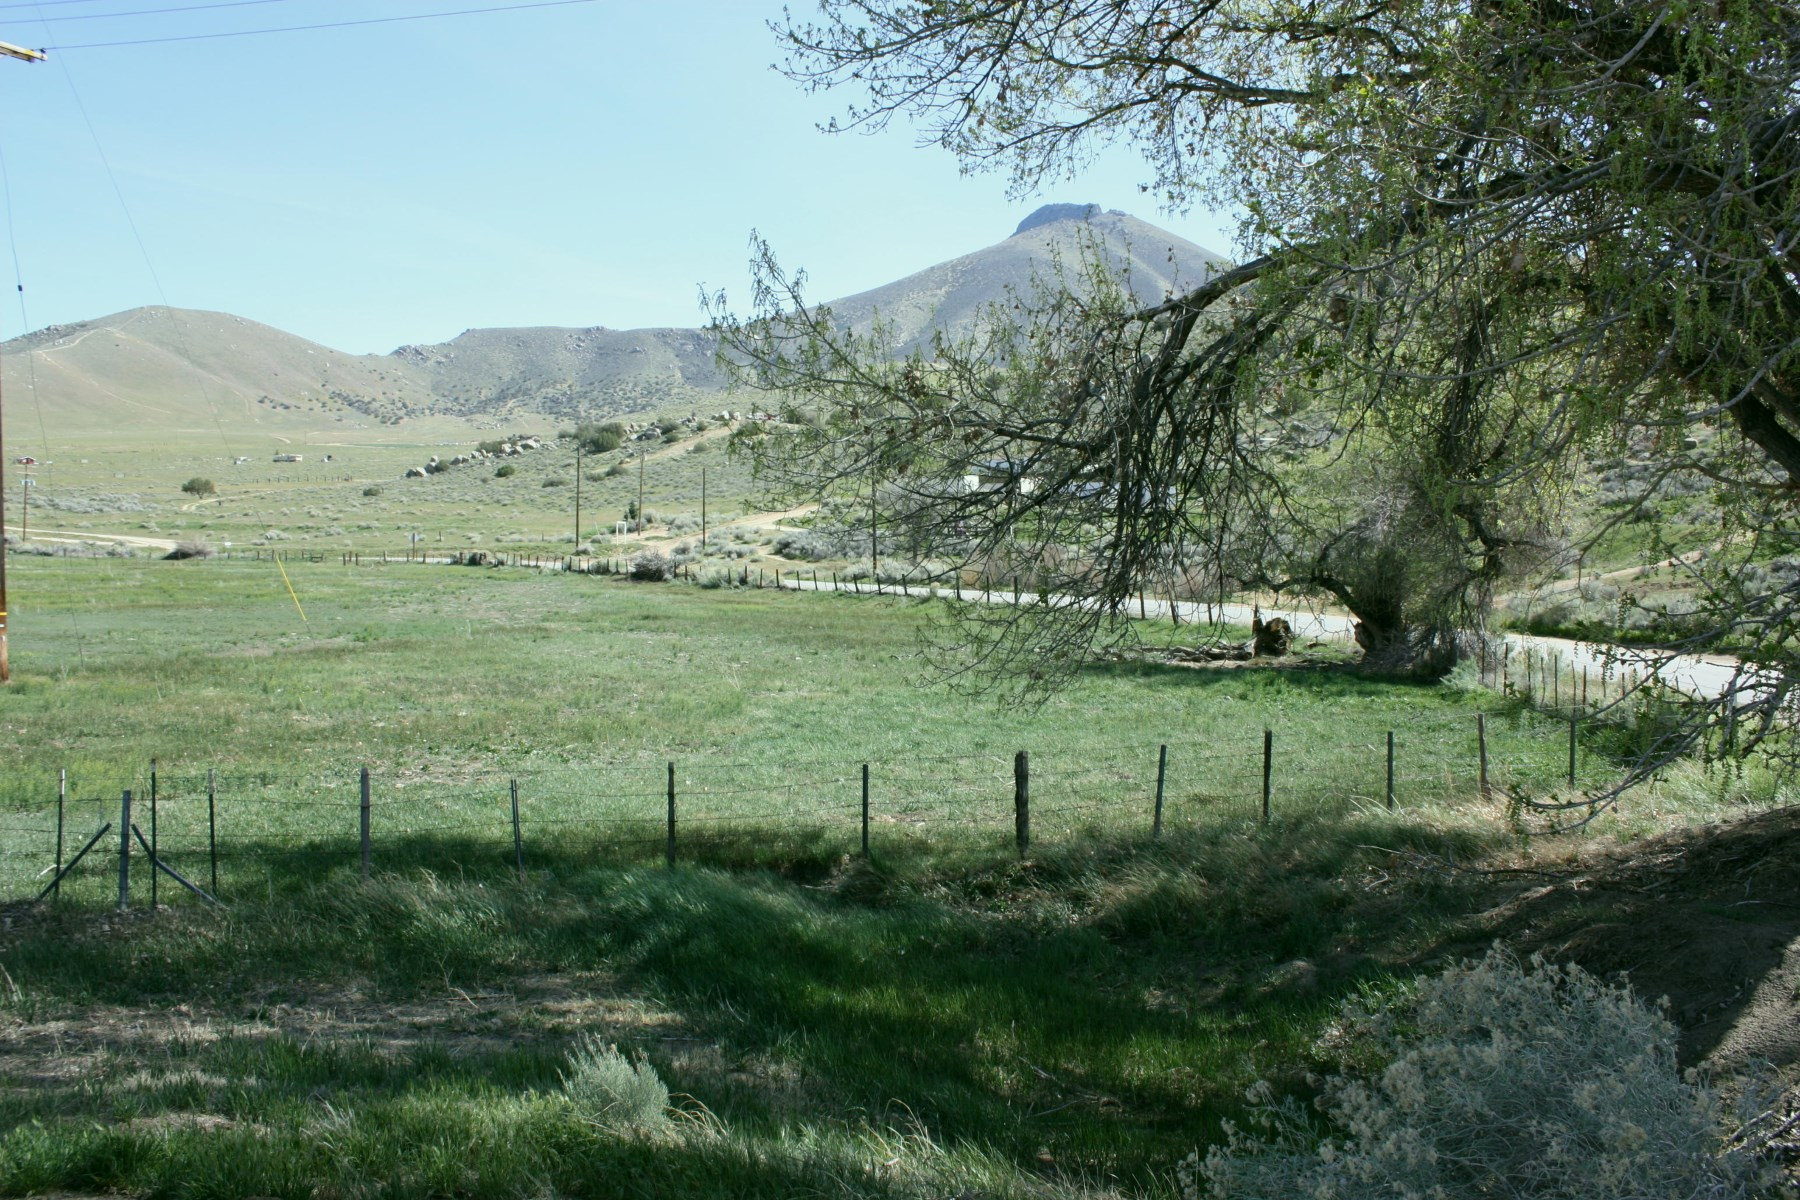 Land for Sale at 3.19 Acres to 'Live The Dream' 426-033-05 Weldon, California, 00000 United States